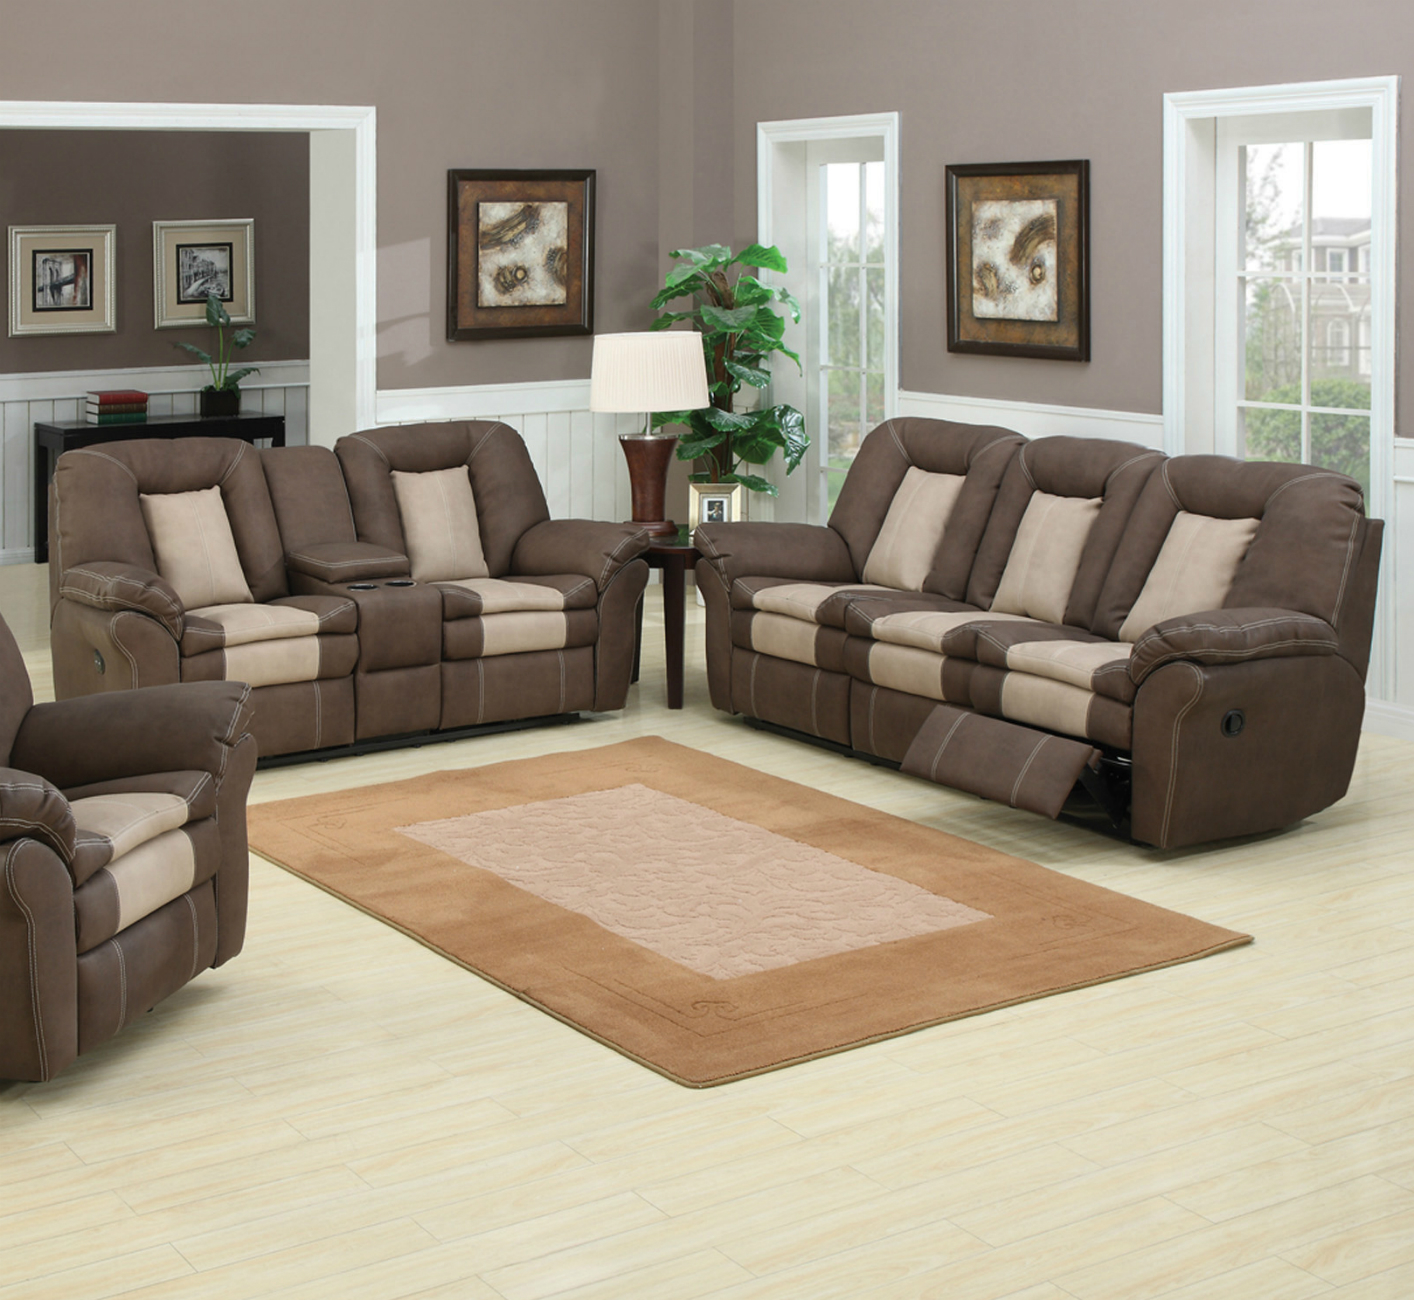 Ac pacific carson 117 brown leather sofa and loveseat set in los angeles ca Sofa loveseat